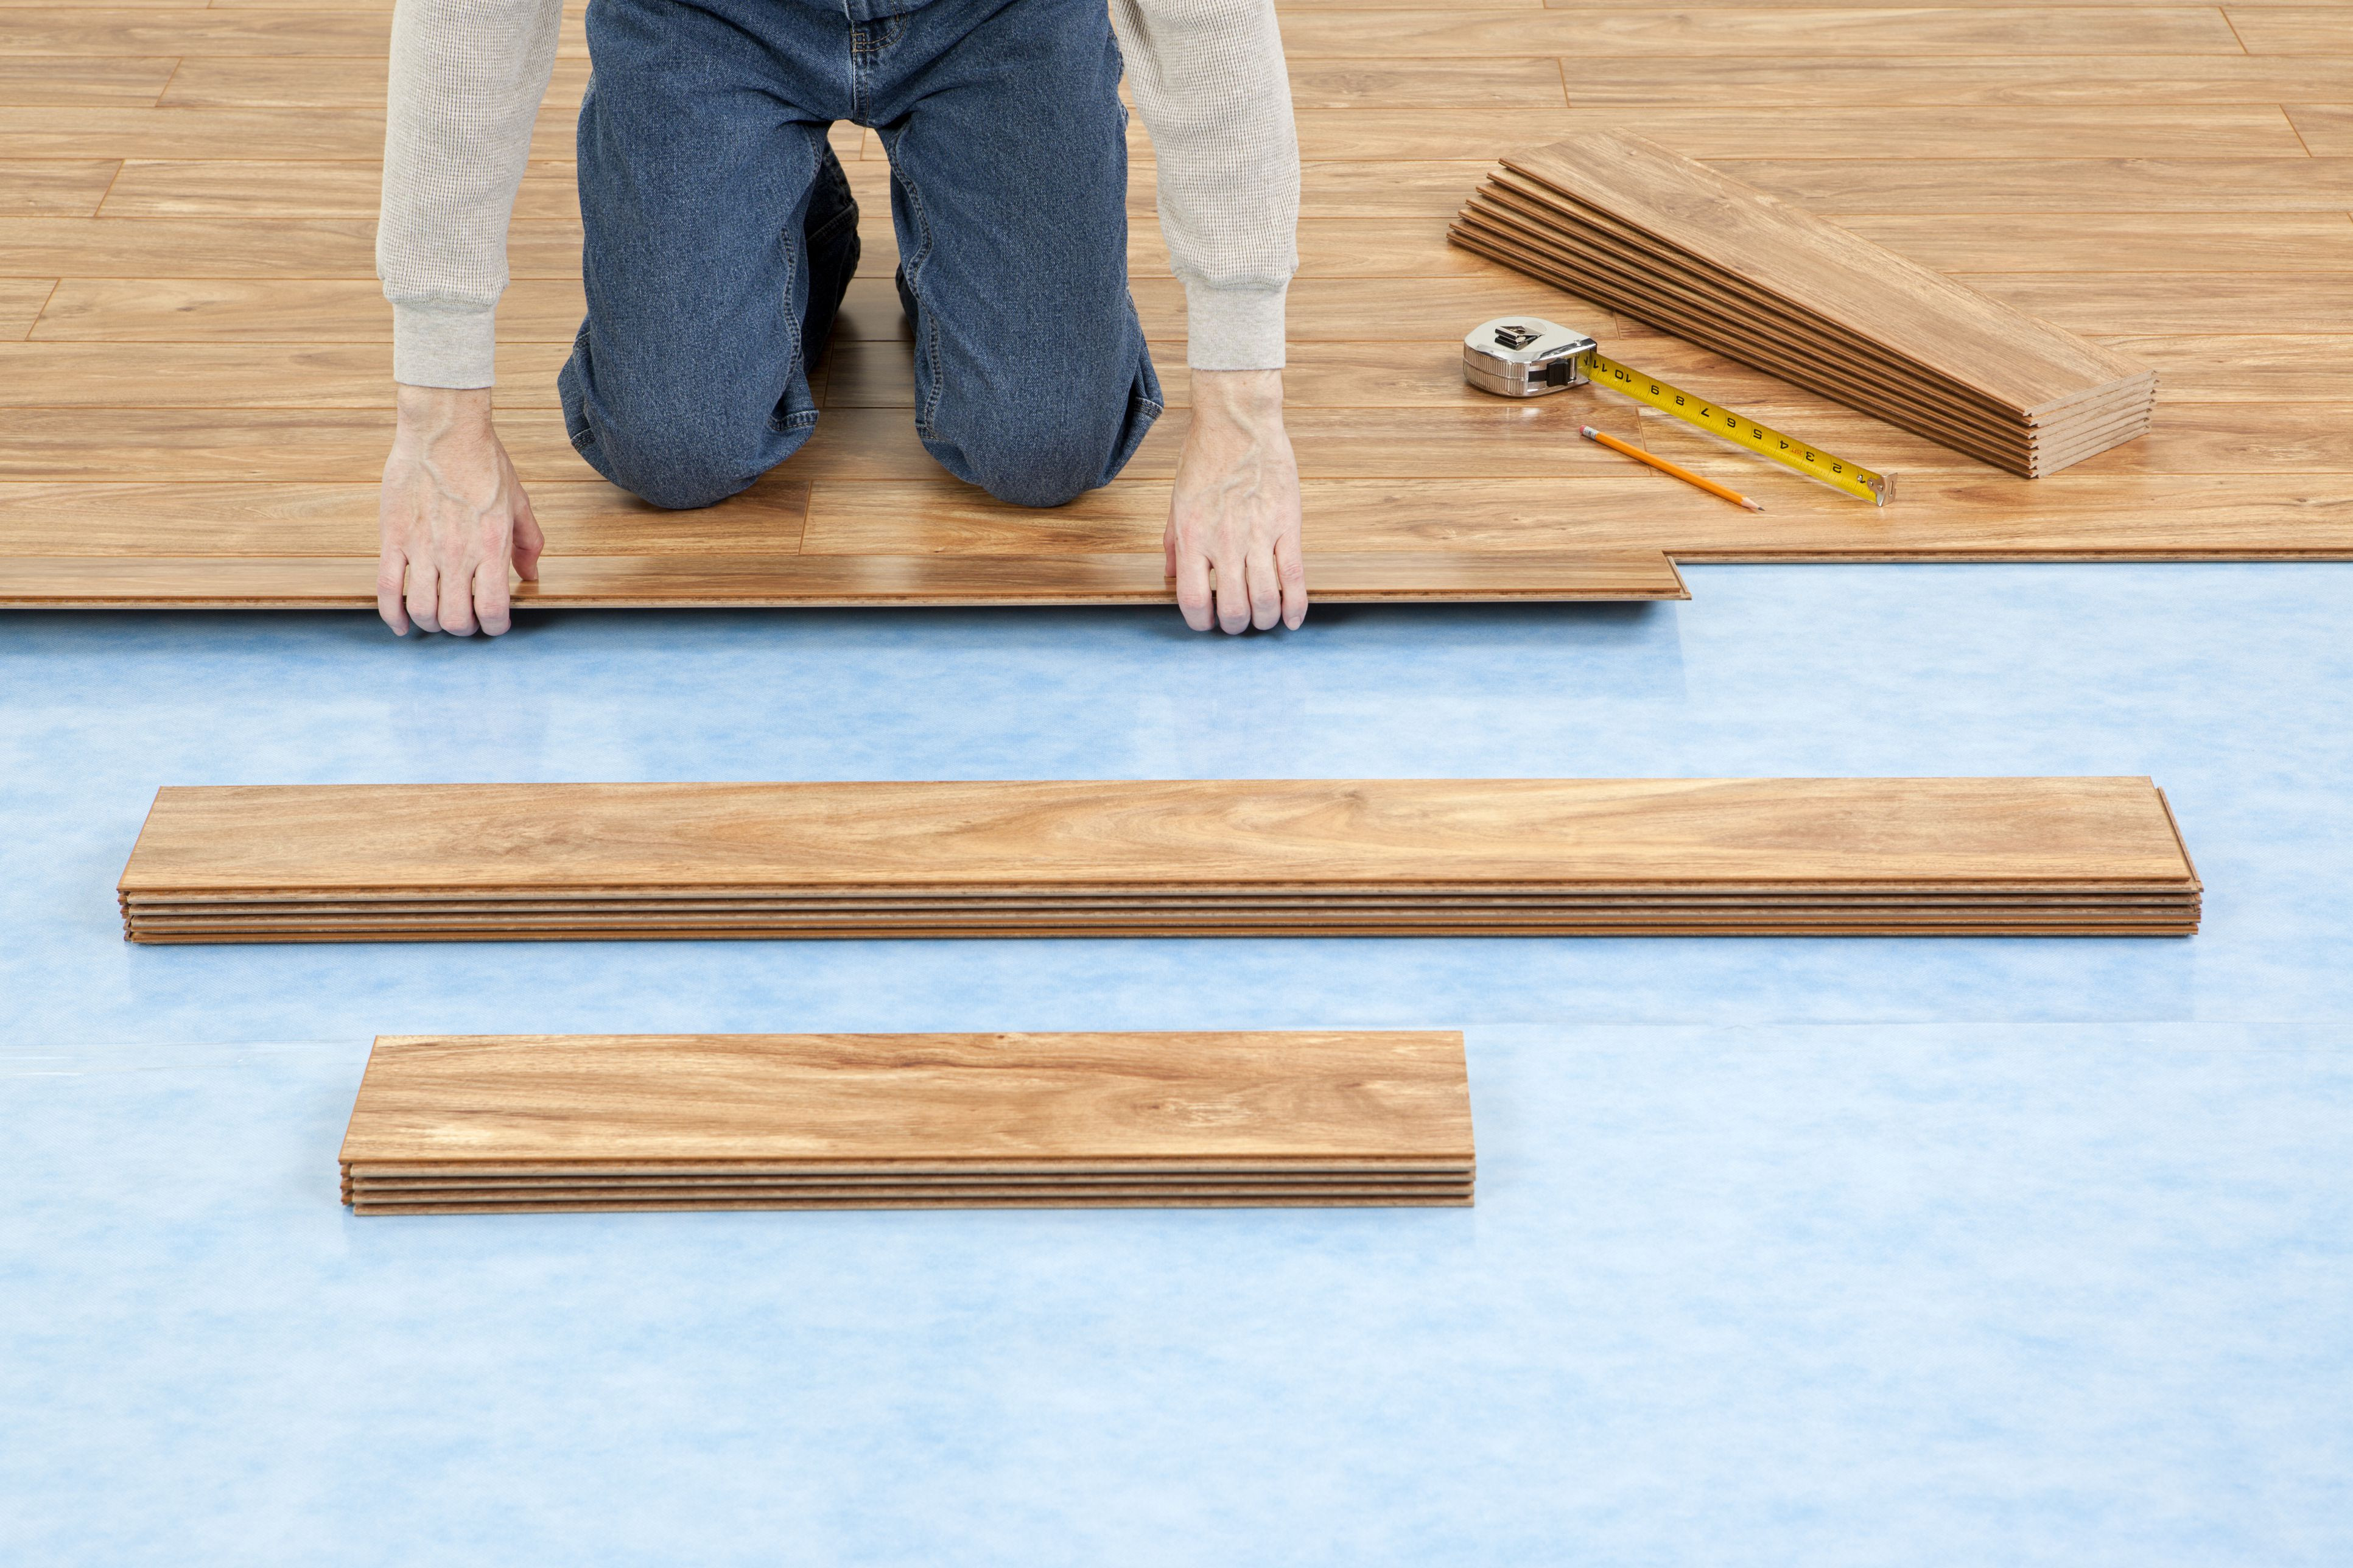 hardwood flooring home depot vs lowes of installing laminate flooring with attached underlayment with regard to new floor installation 155283725 582735c03df78c6f6af8ac80